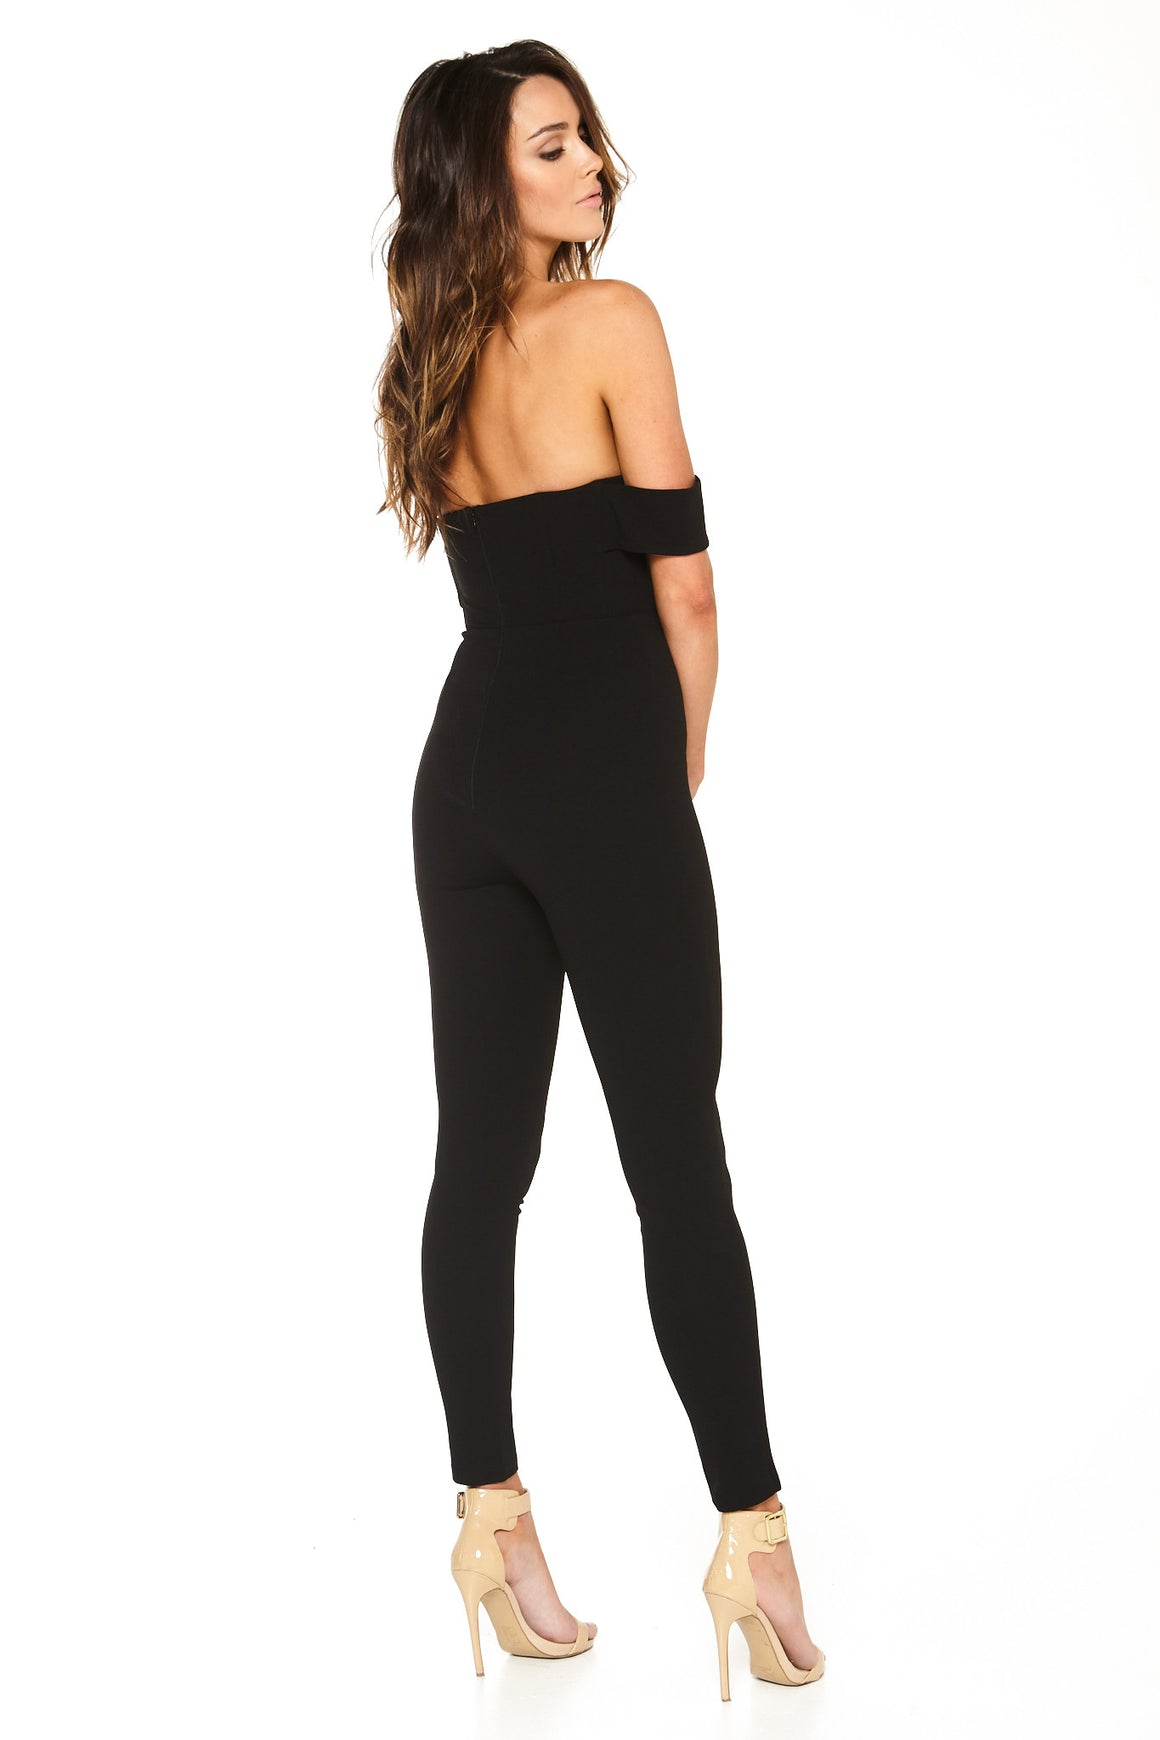 Cynthia Off-Shoulder Jumpsuit - Black [SAMPLE SALE]